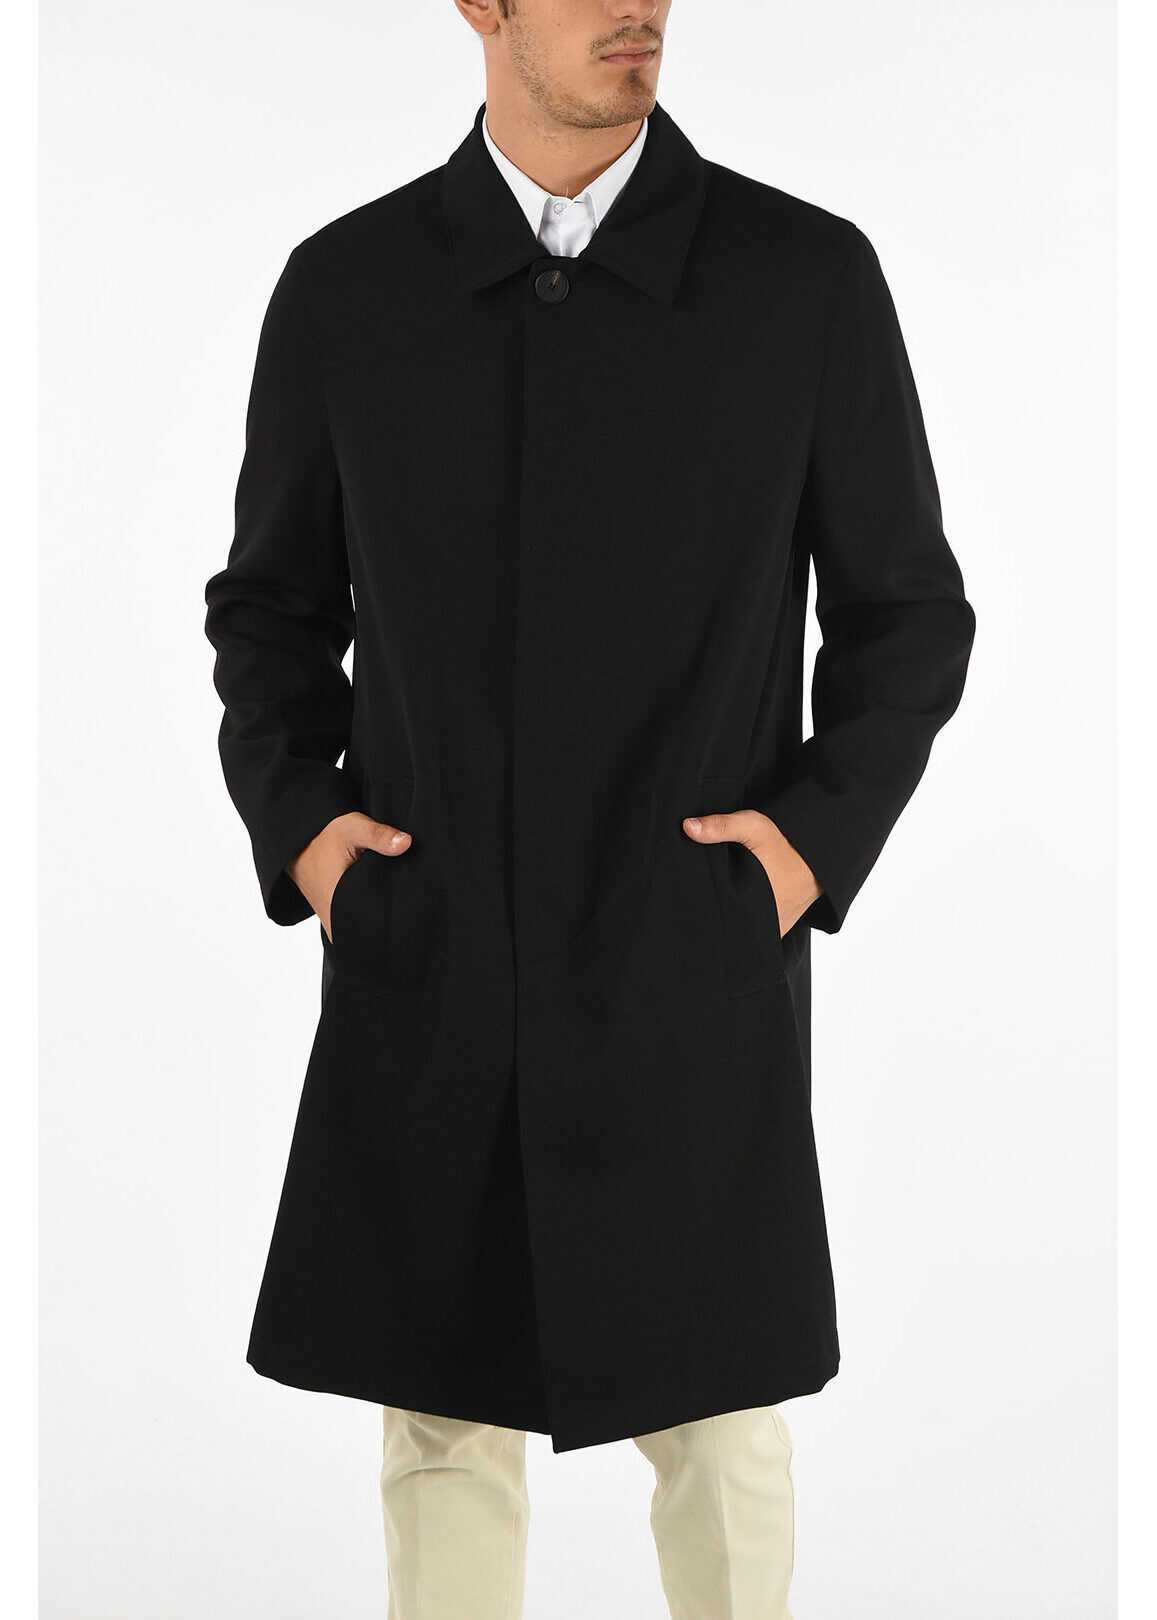 Givenchy Wool Coat with Hidden Button BLACK